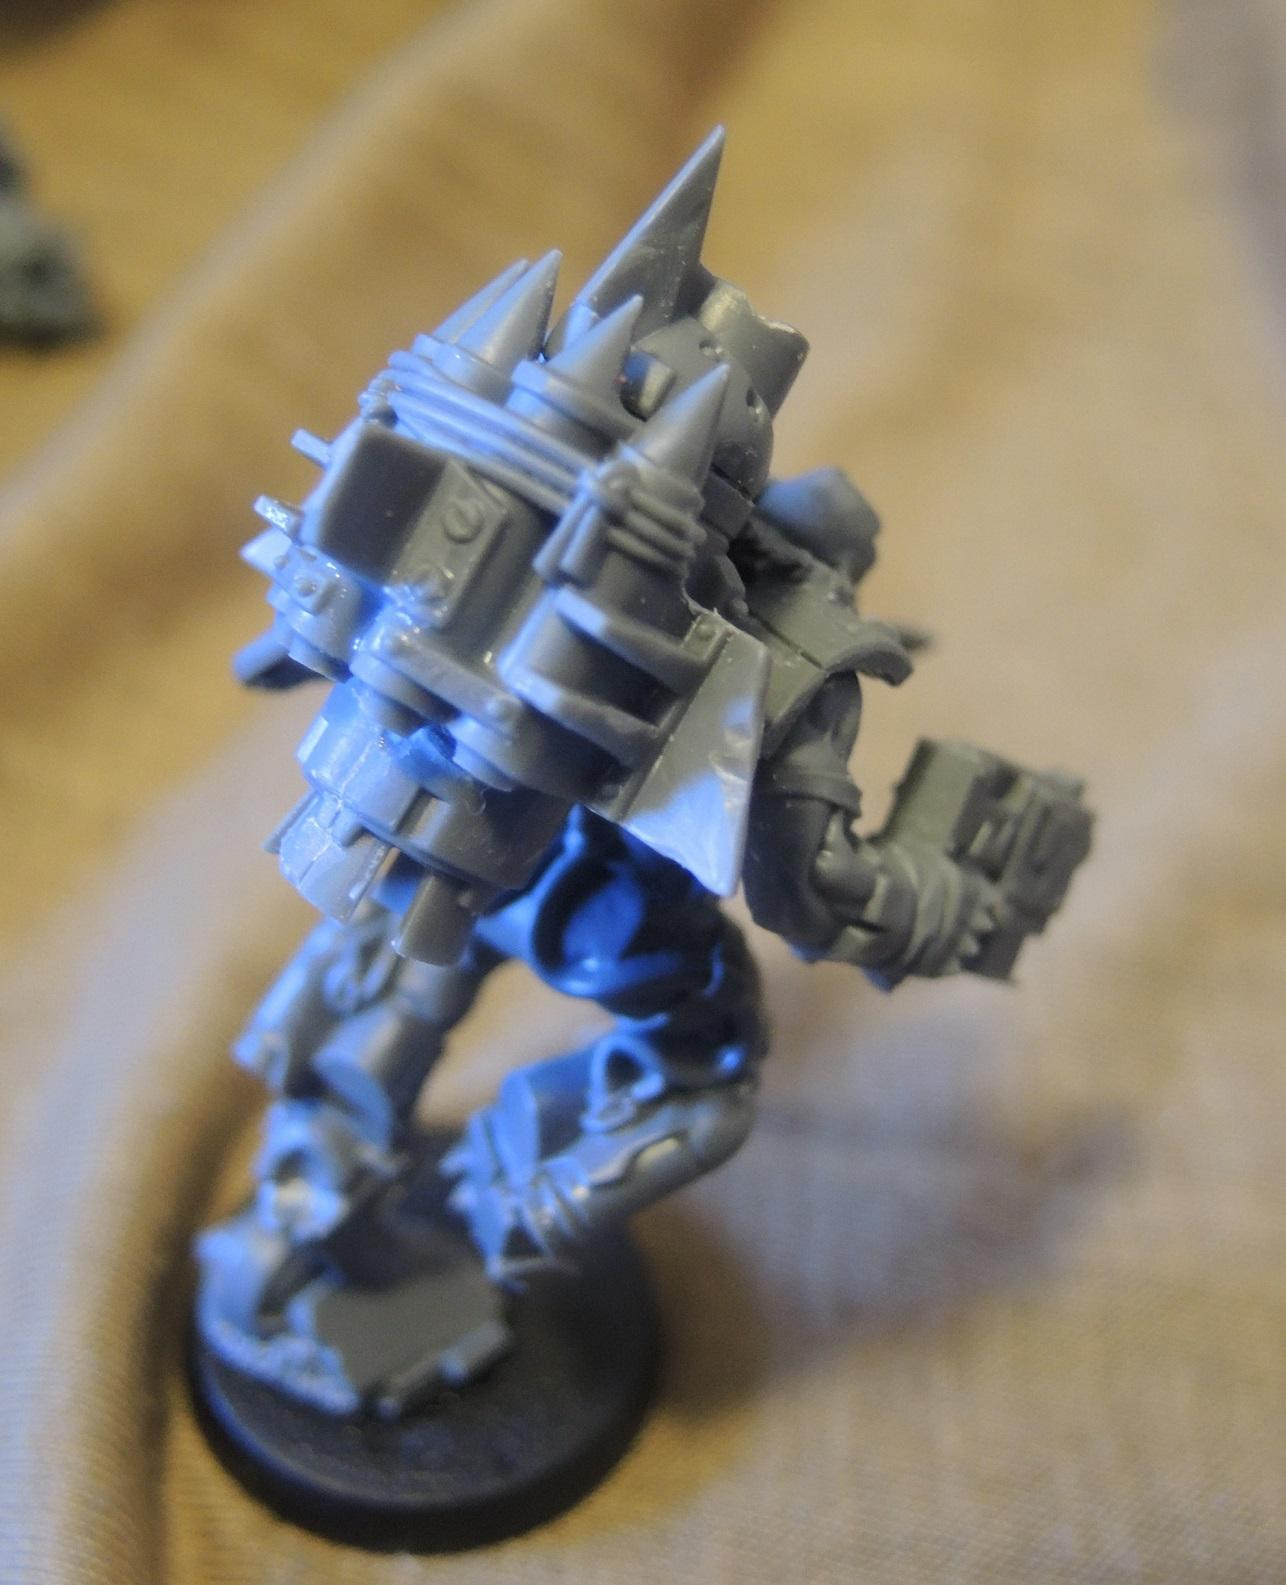 Conversion, Orks, Stormboys, The Kan't Stoppable, Waaazag